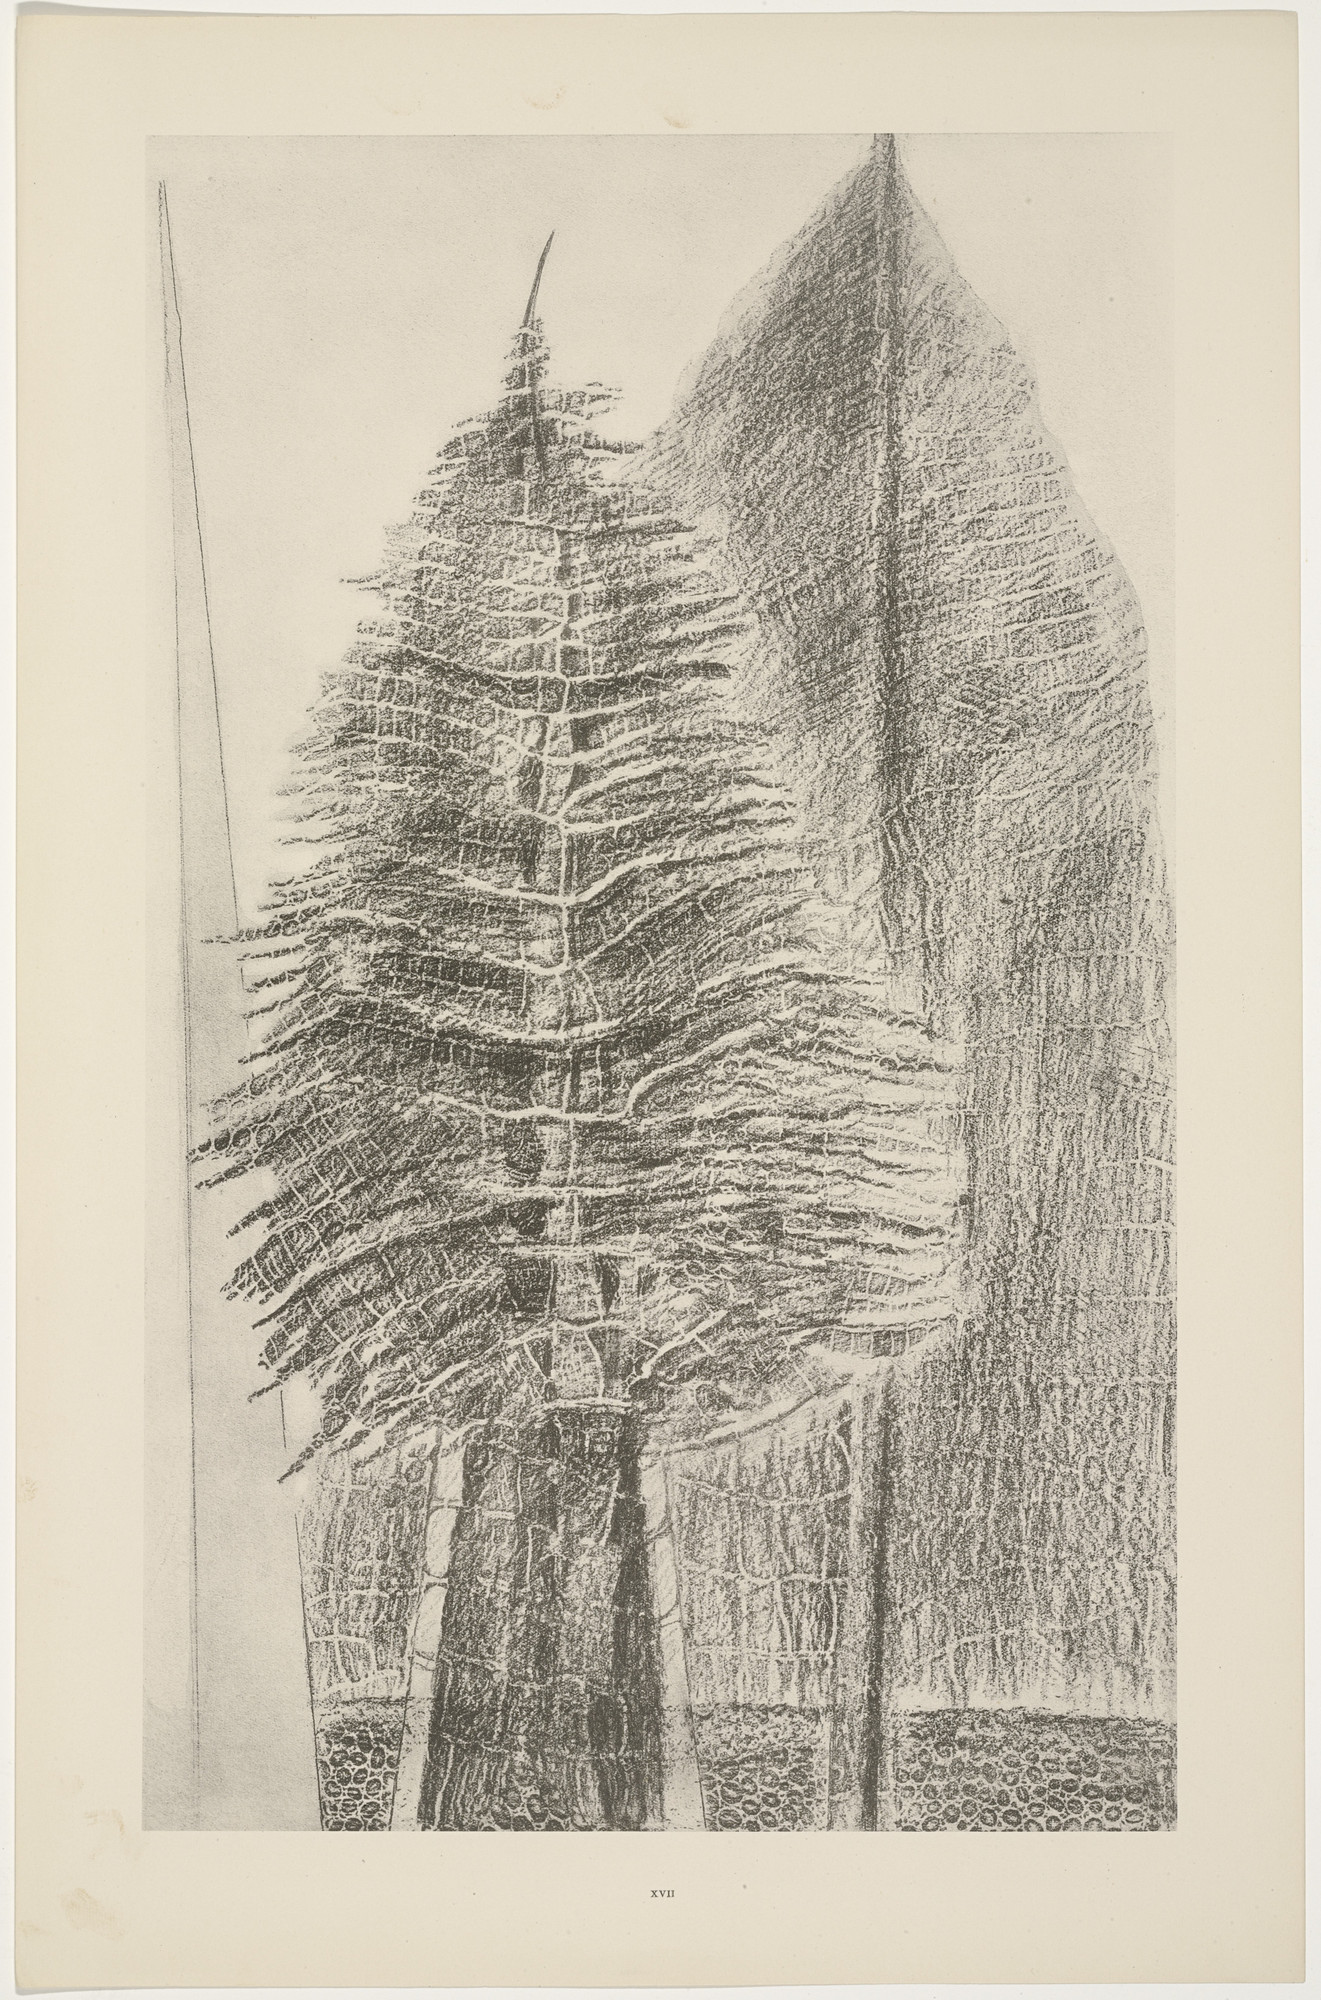 Max Ernst. The Fascinating Cypress (Le Fascinant cyprès) from Natural History (Histoire naturelle). c. 1925, published 1926